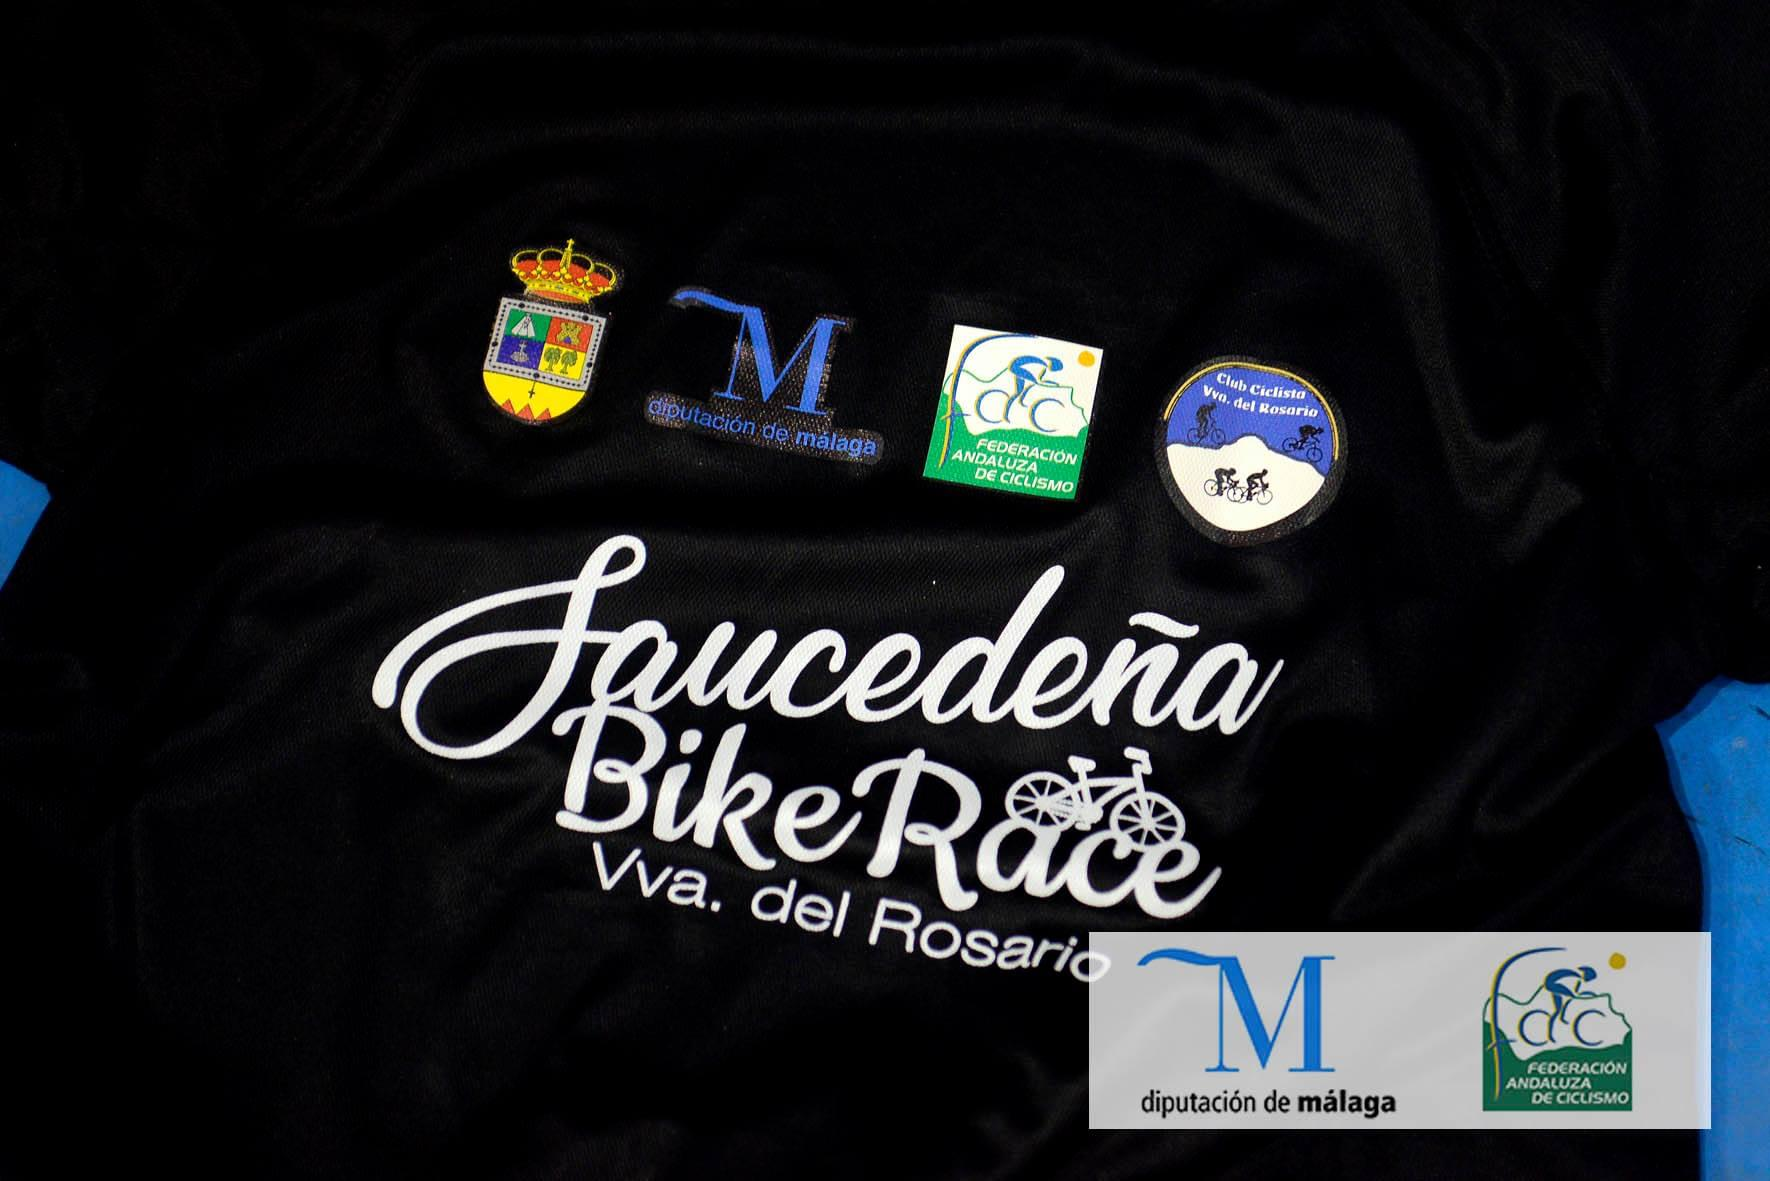 II SAUCEDEÑA BIKE RACE